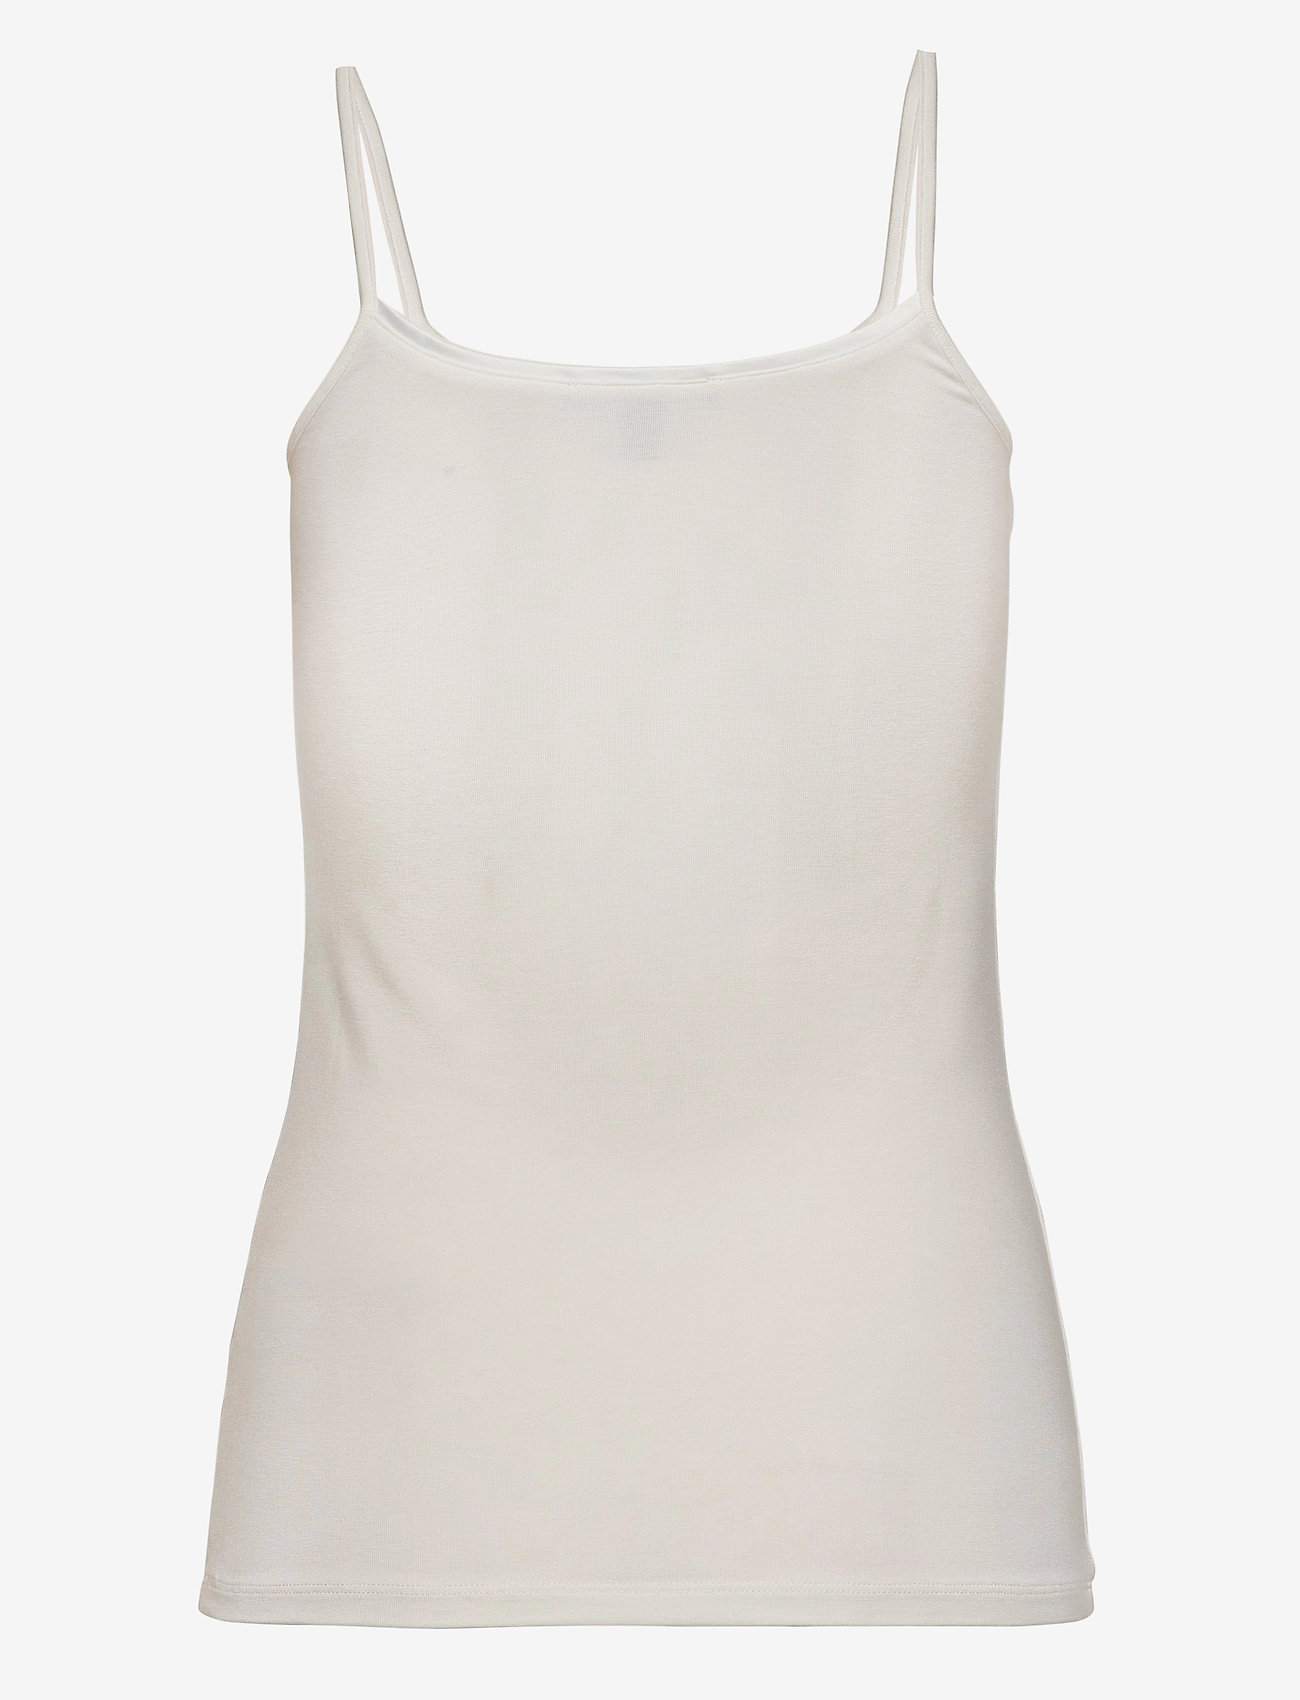 Esprit Collection - T-Shirts - sleeveless tops - off white - 1